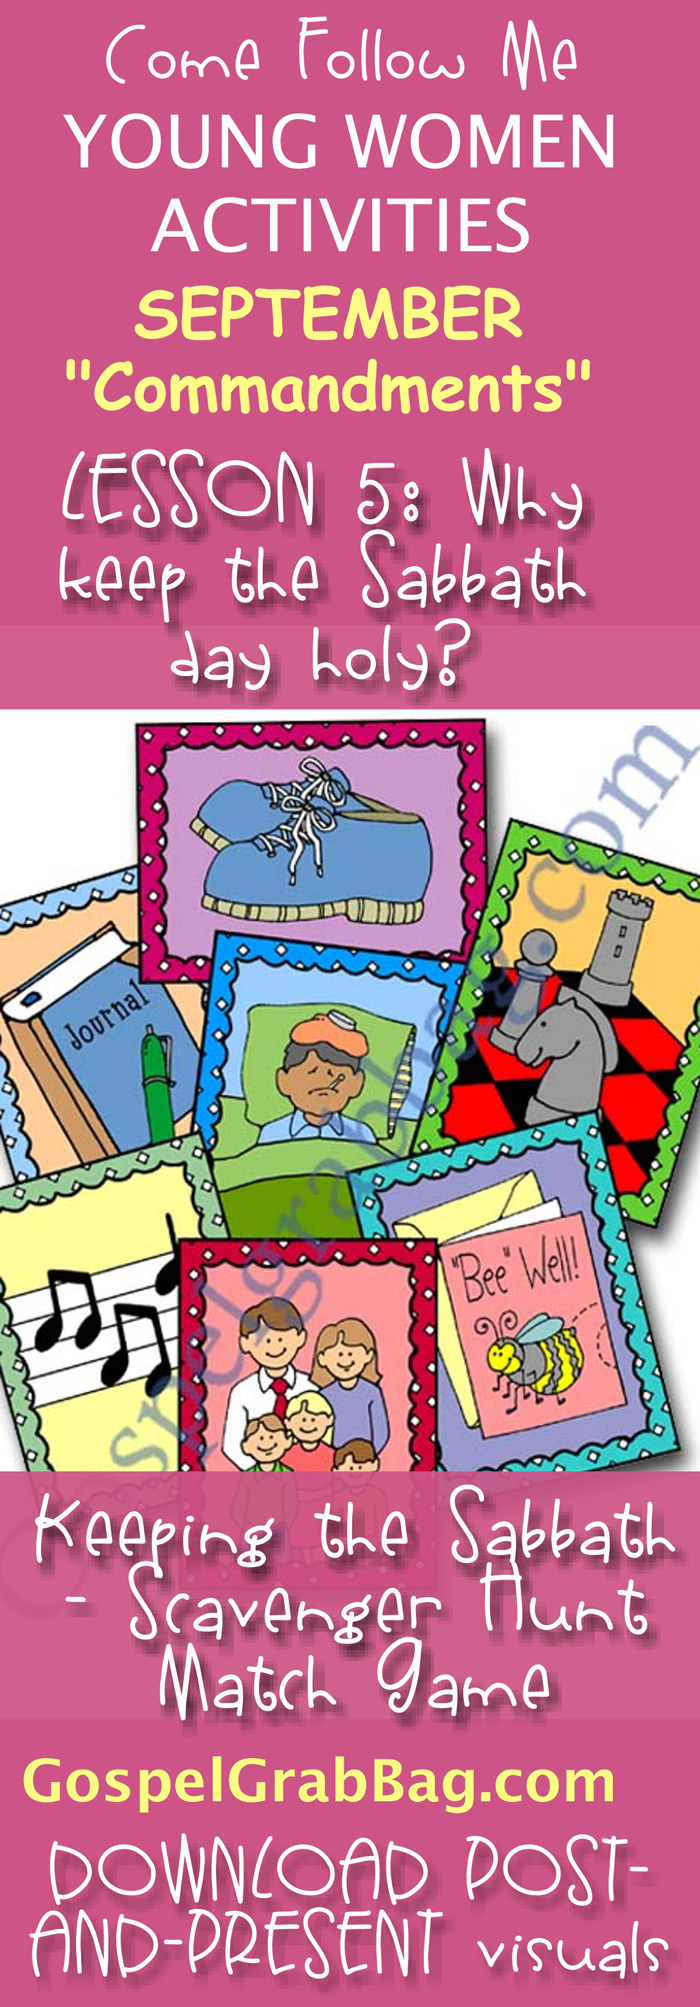 """SABBATH DAY: Come Follow Me – LDS Young Women Activities, September Theme: """"Commandments"""", Lesson #5 Why are we commanded to keep the Sabbath day holy? POST-AND-PRESENT: Keep the Sabbath – Scavenger Hunt or Match Game – activities to download from gospelgrabbag.com"""